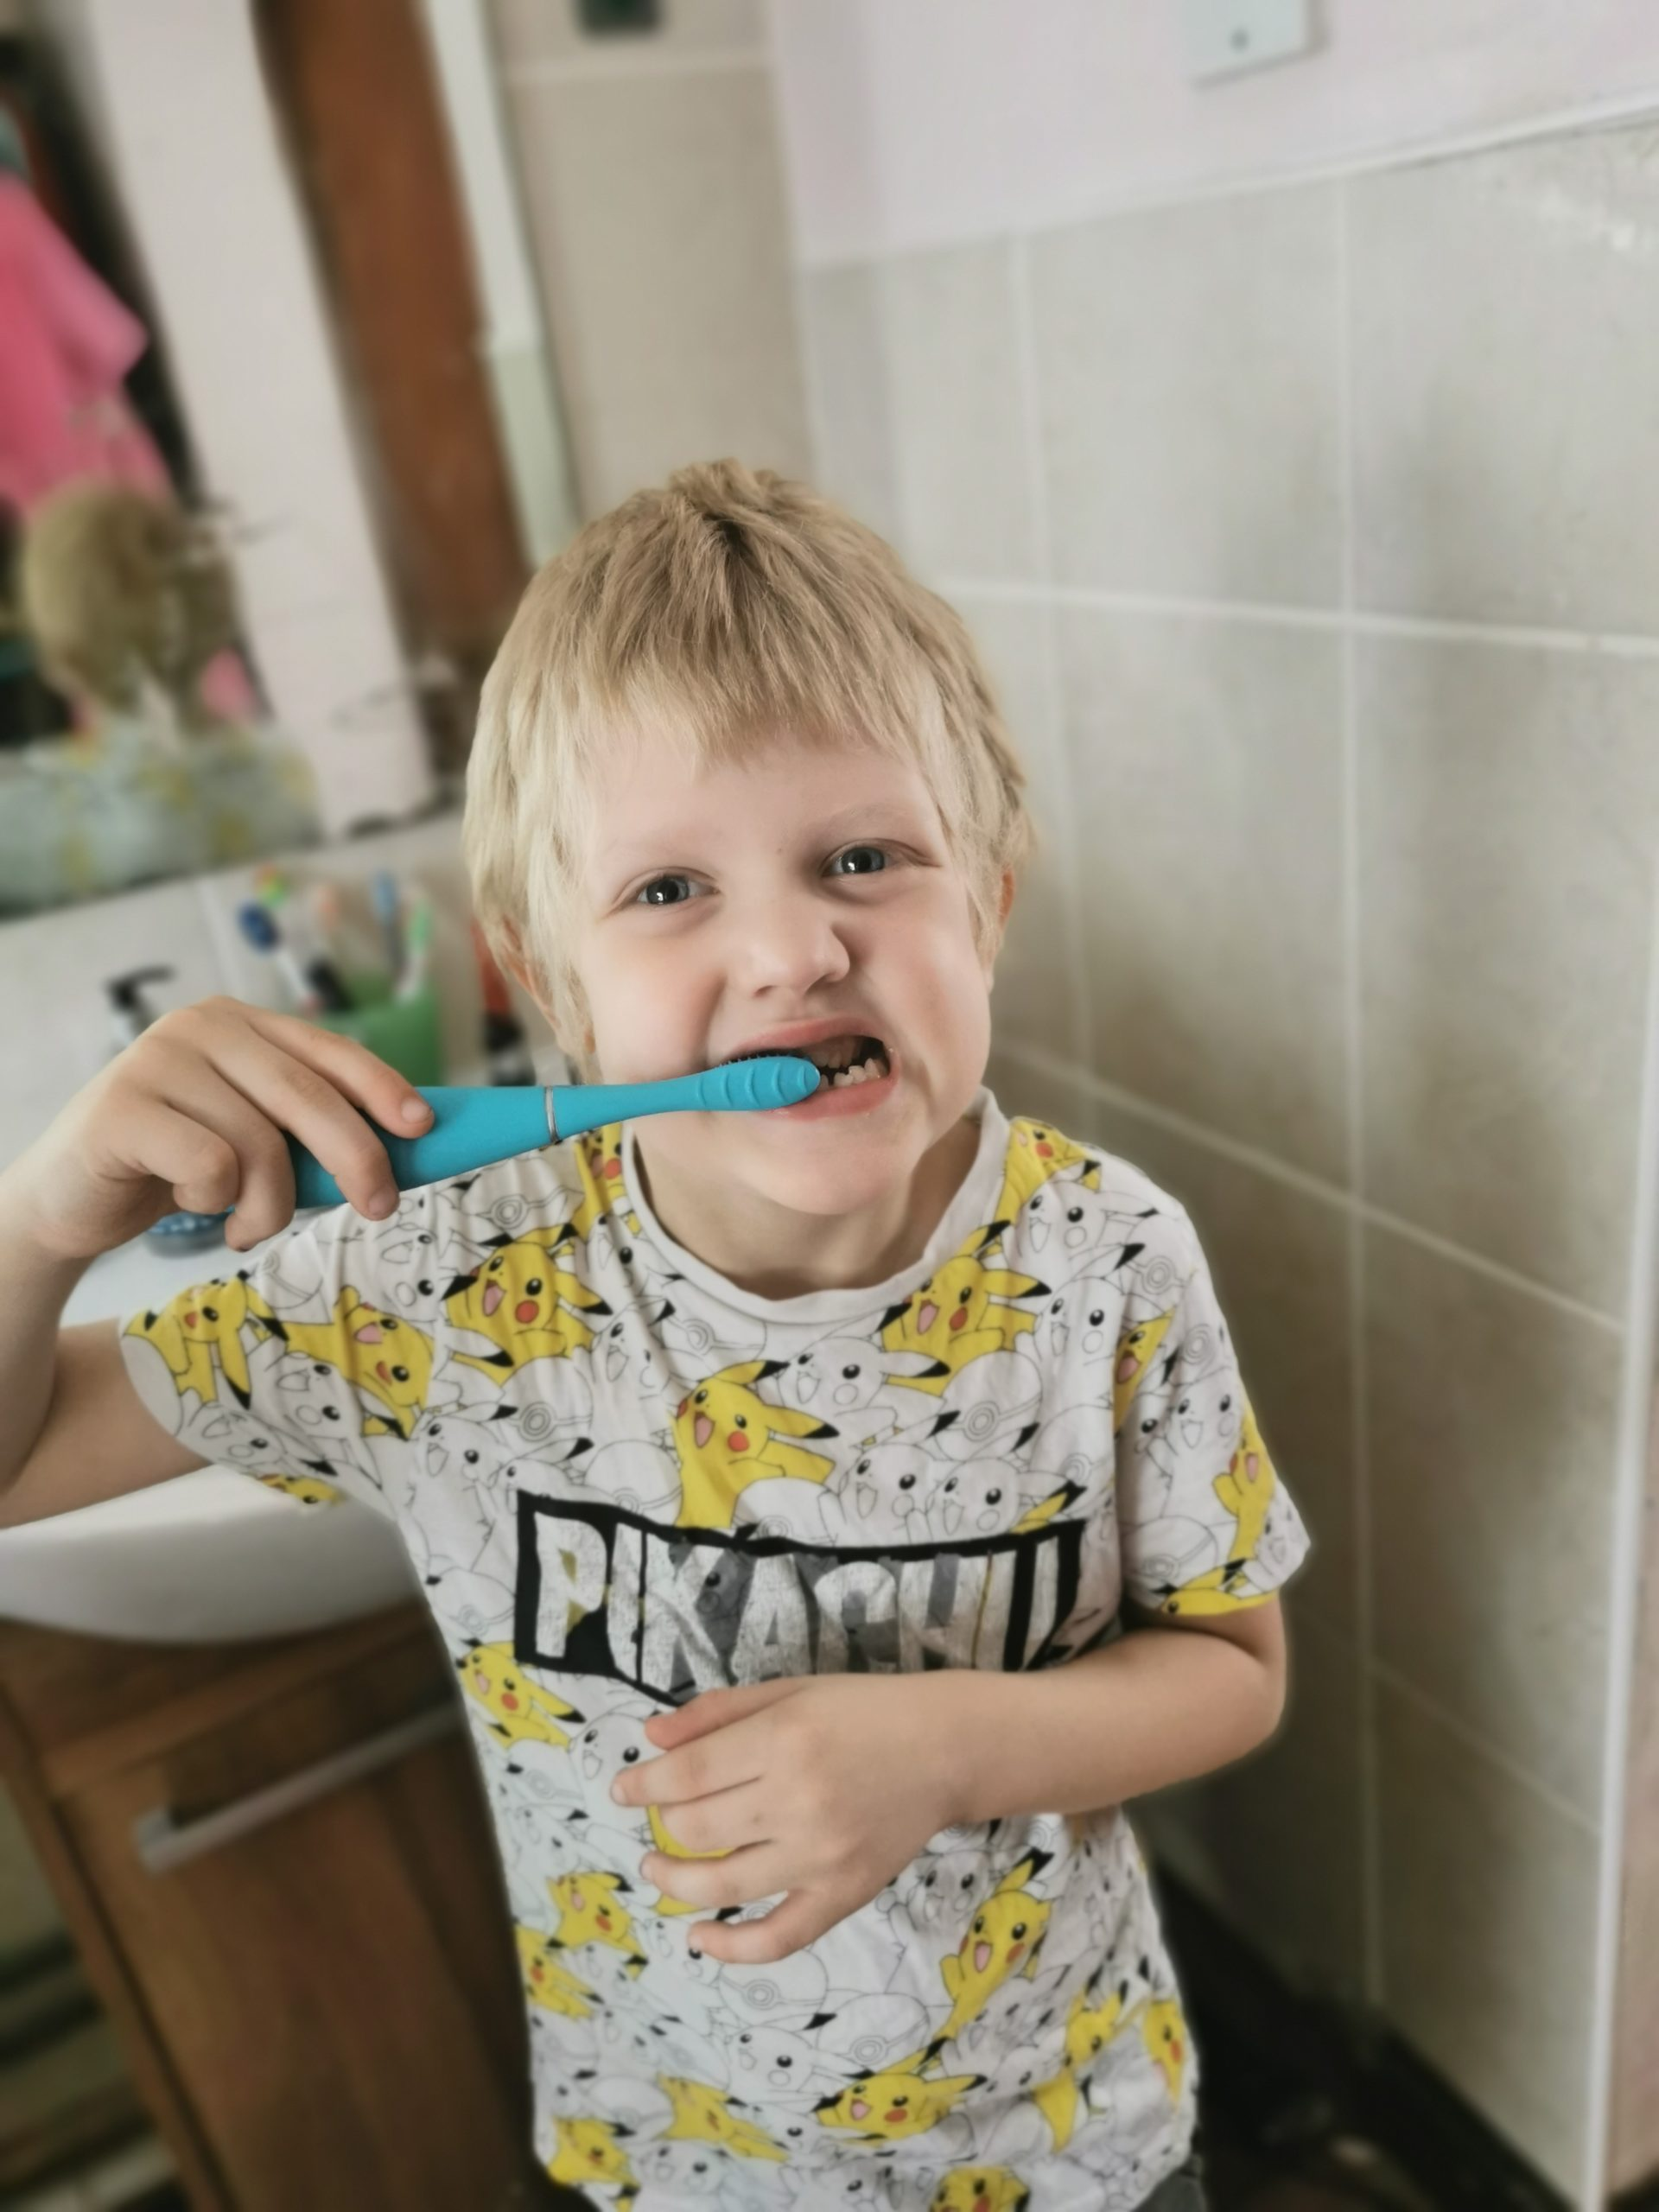 making toothbrushing fun